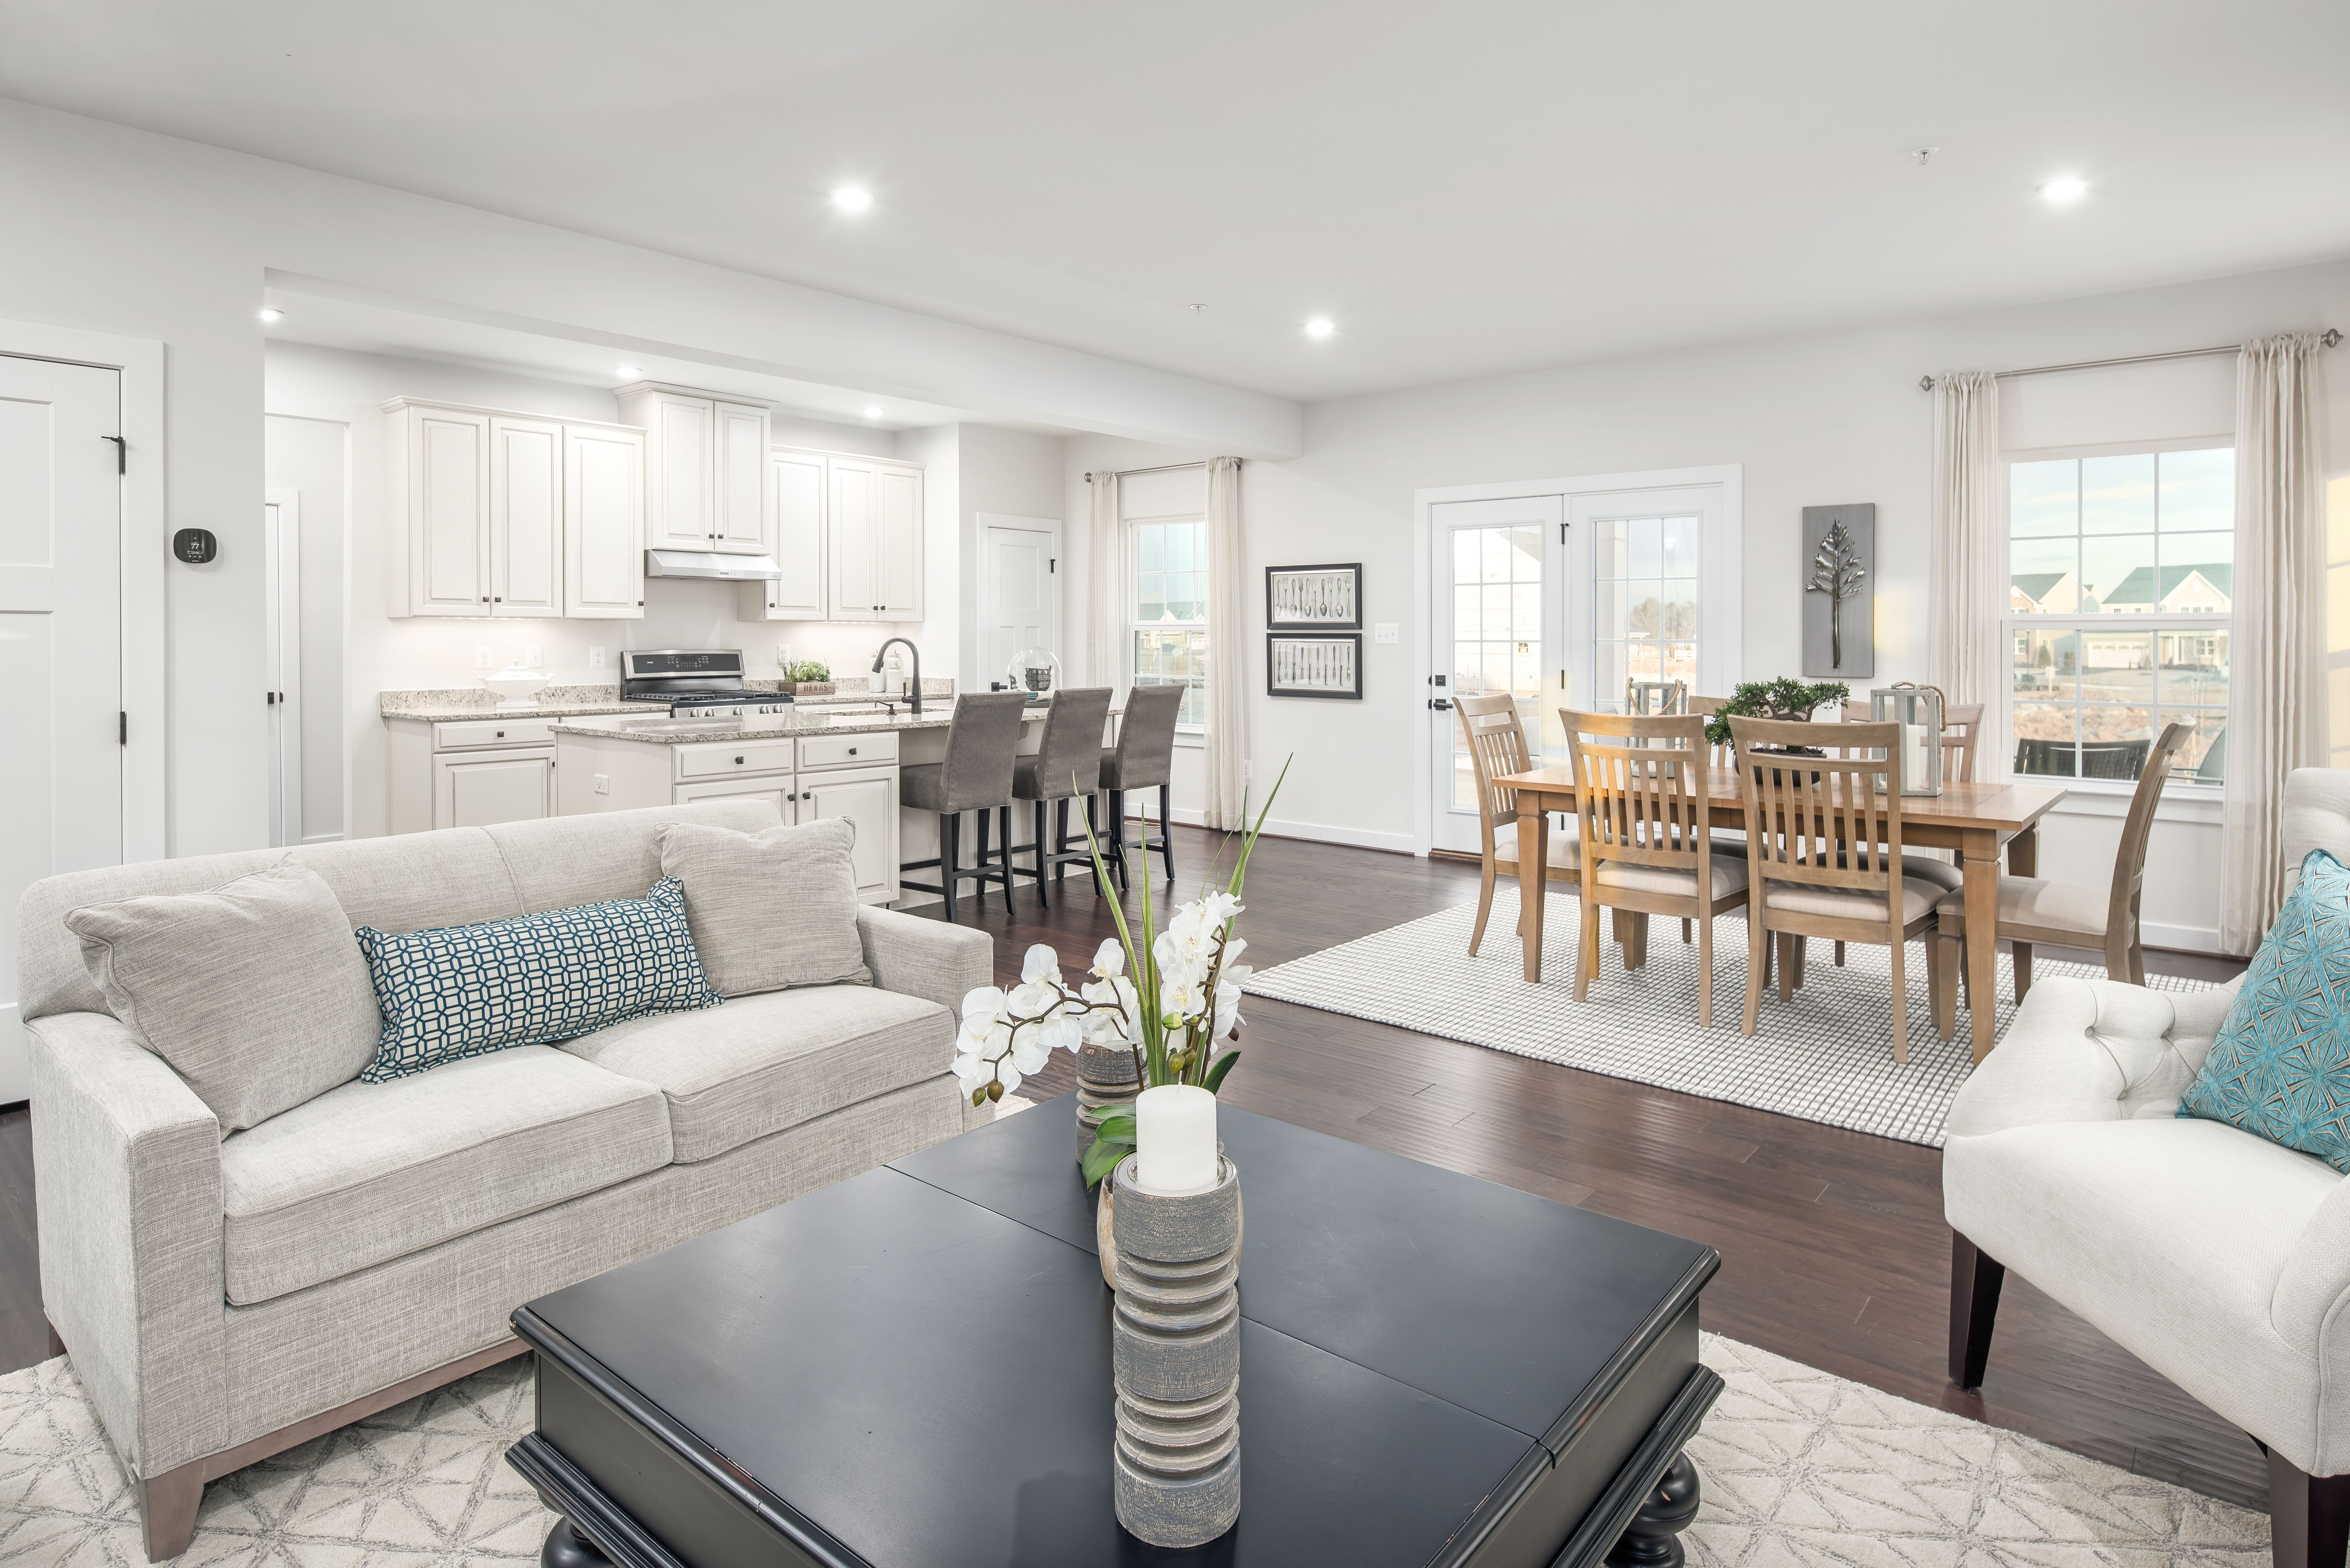 Living Area featured in the Hudson By HeartlandHomes in Morgantown, WV